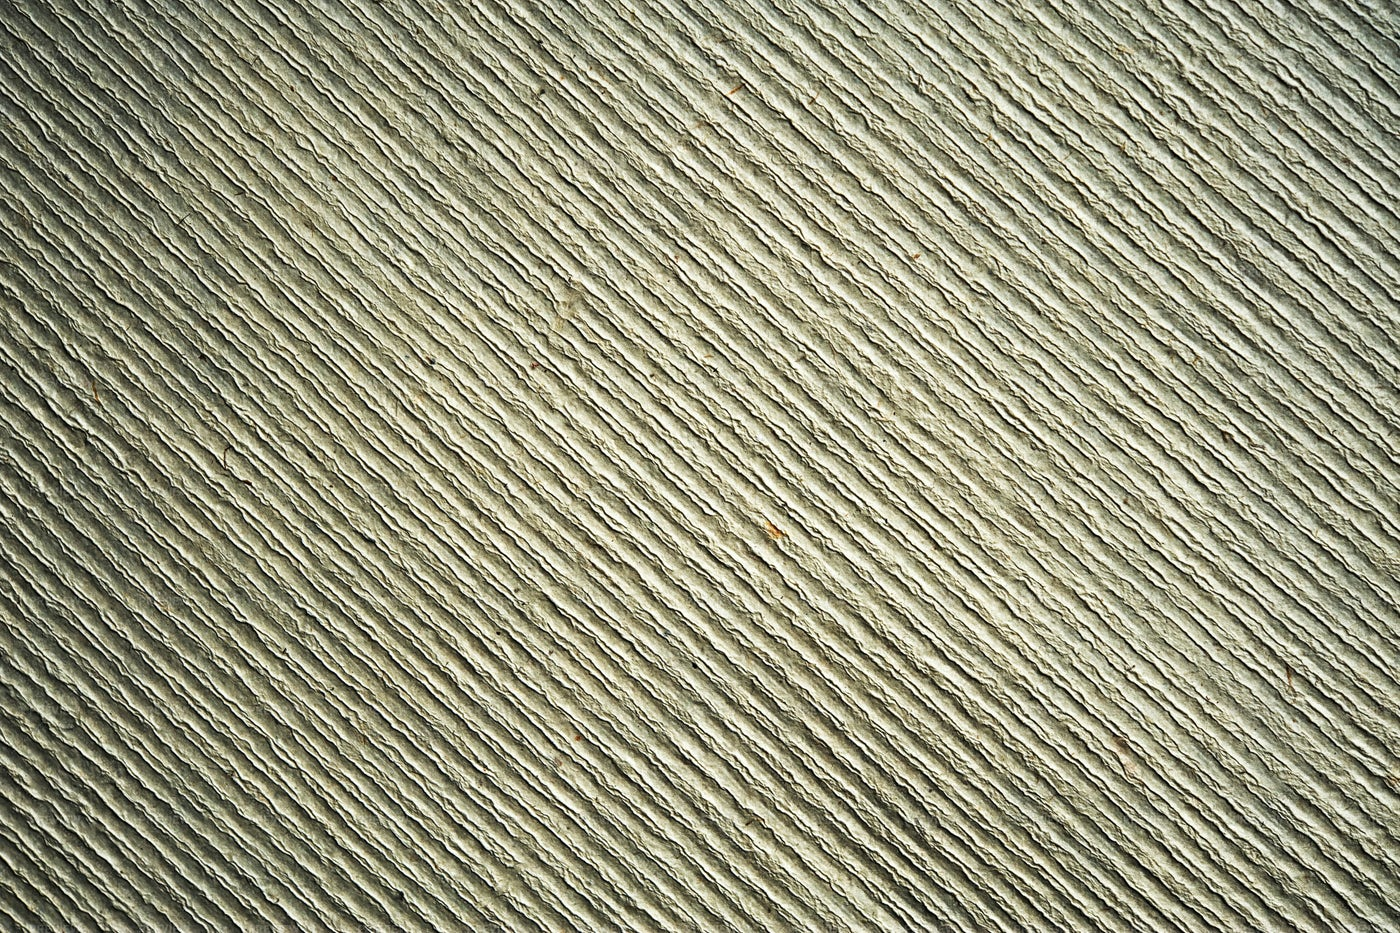 Old Vintage Paper Texture: Stock Photos